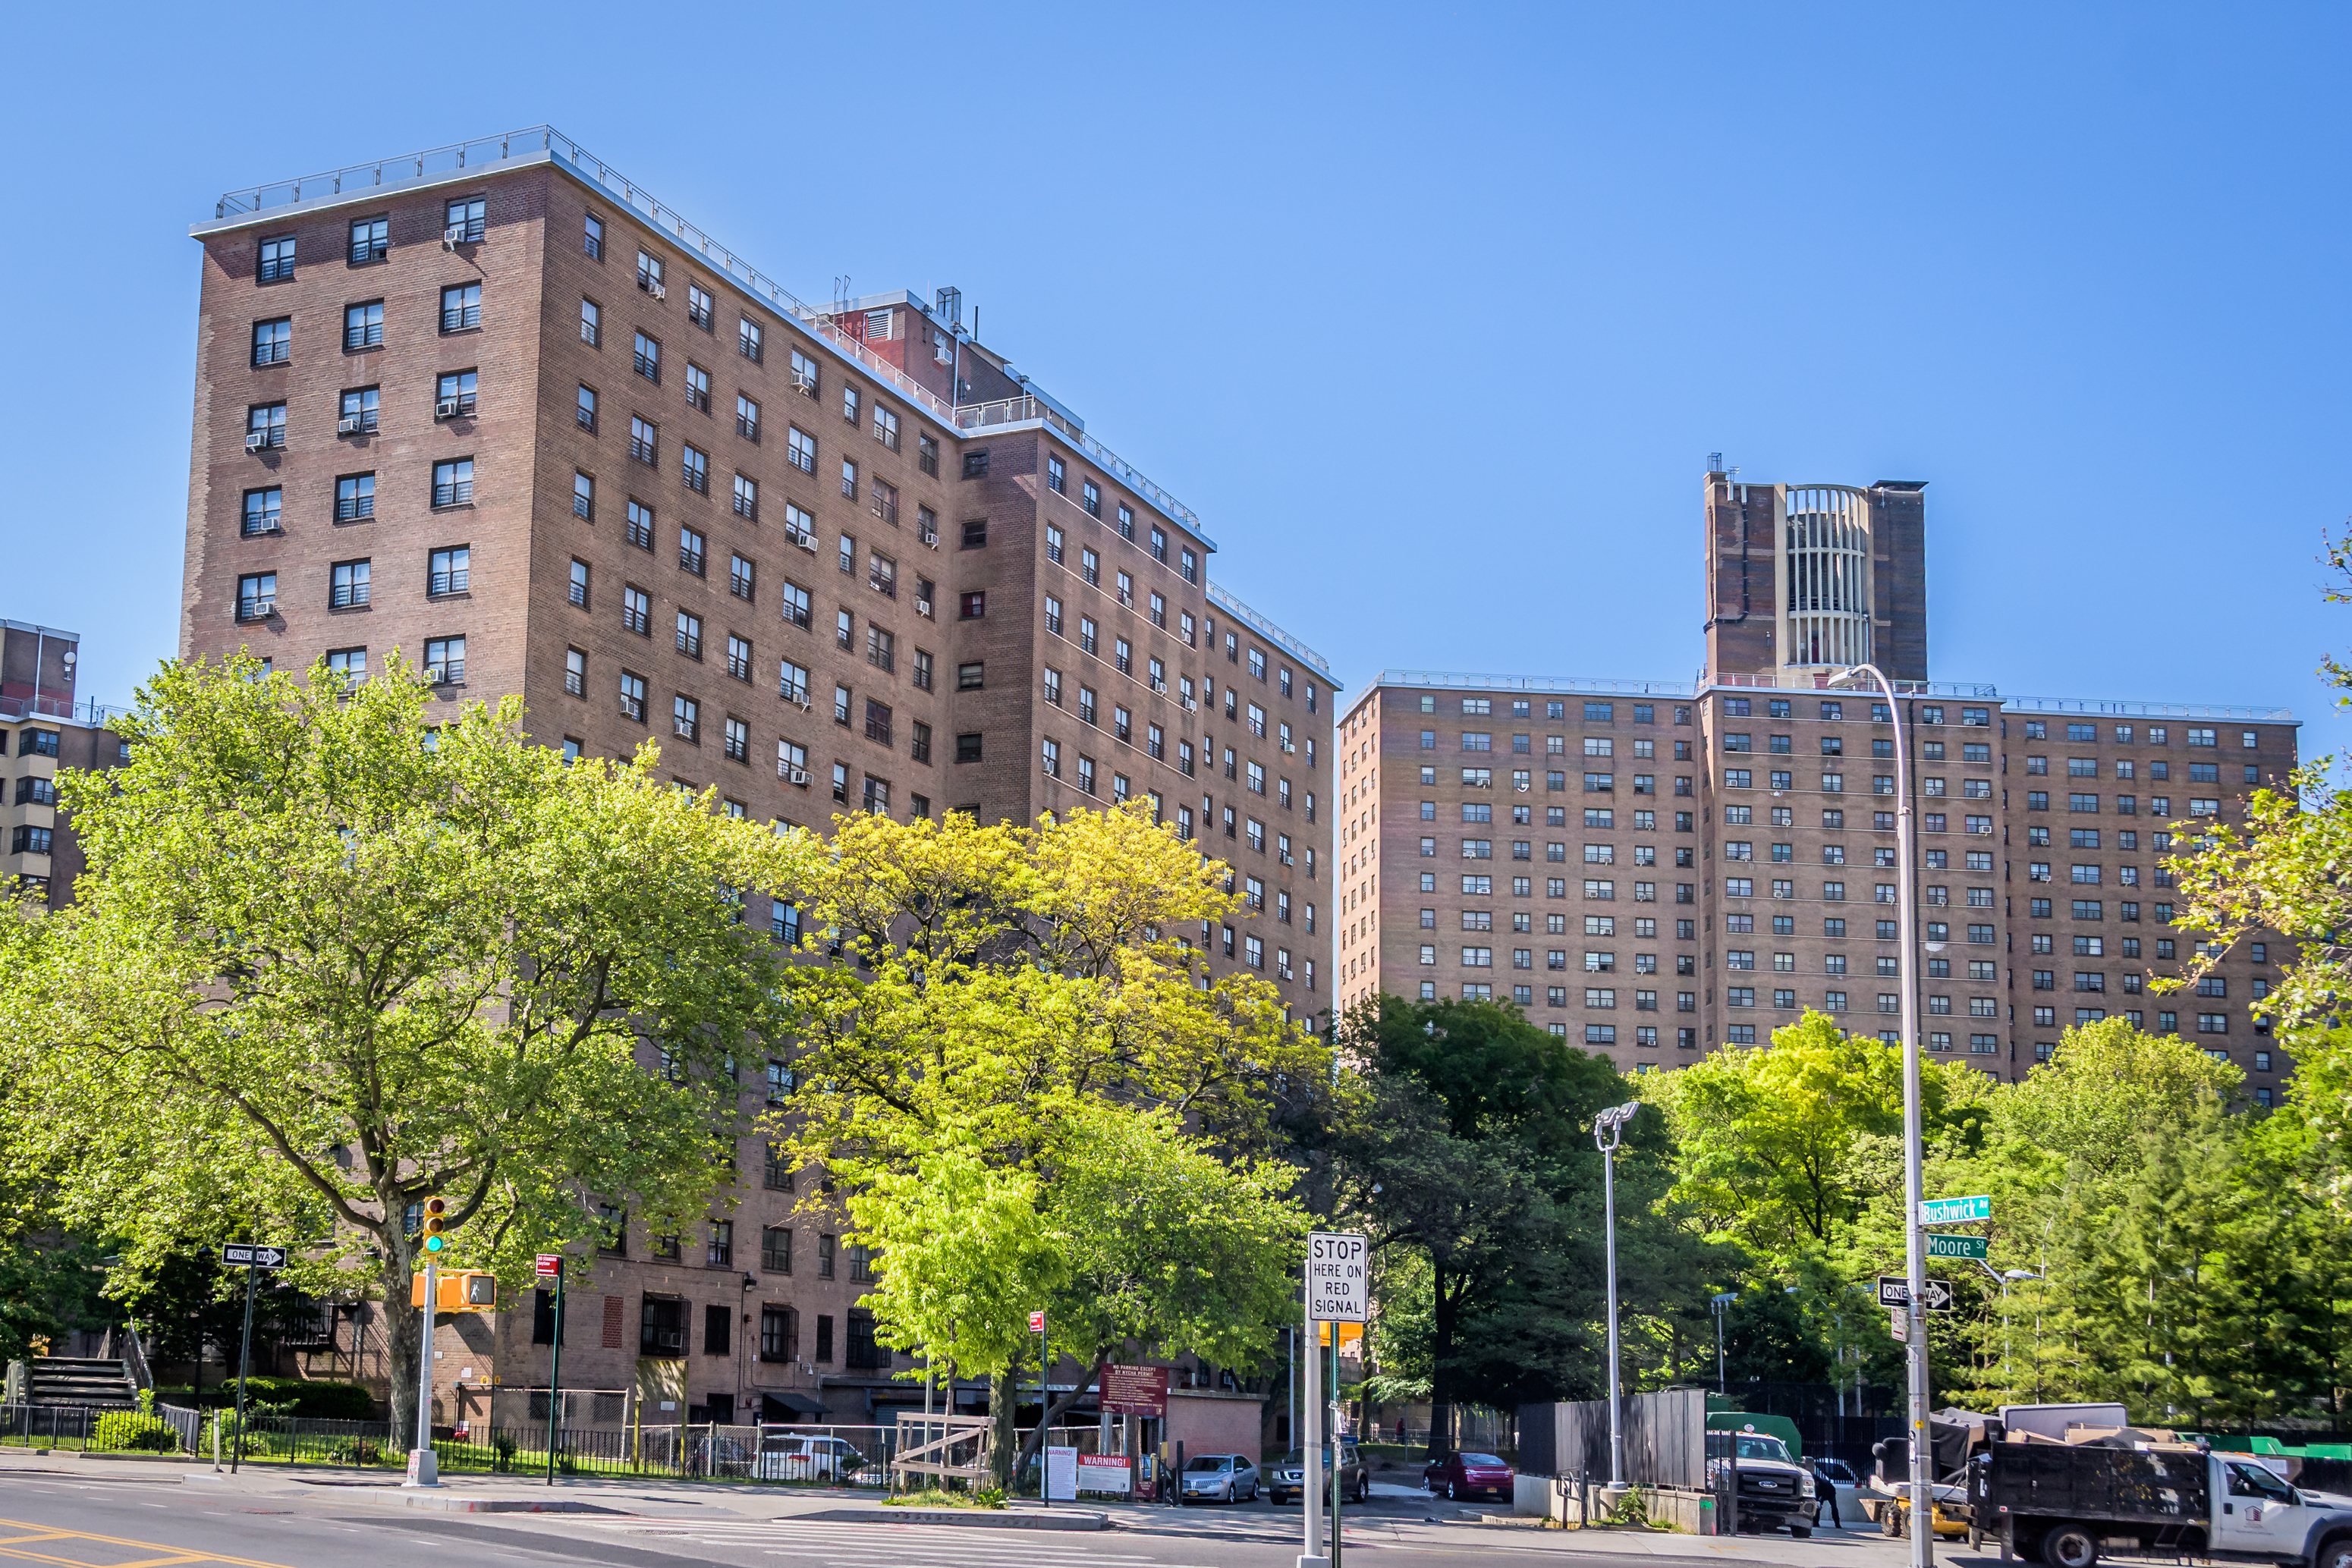 At the height of the pandemic, New York officials said the COVID-19 death rate among residents of public housing projects such as Brooklyn's Bushwick Houses was more than twice that of the city as a whole.